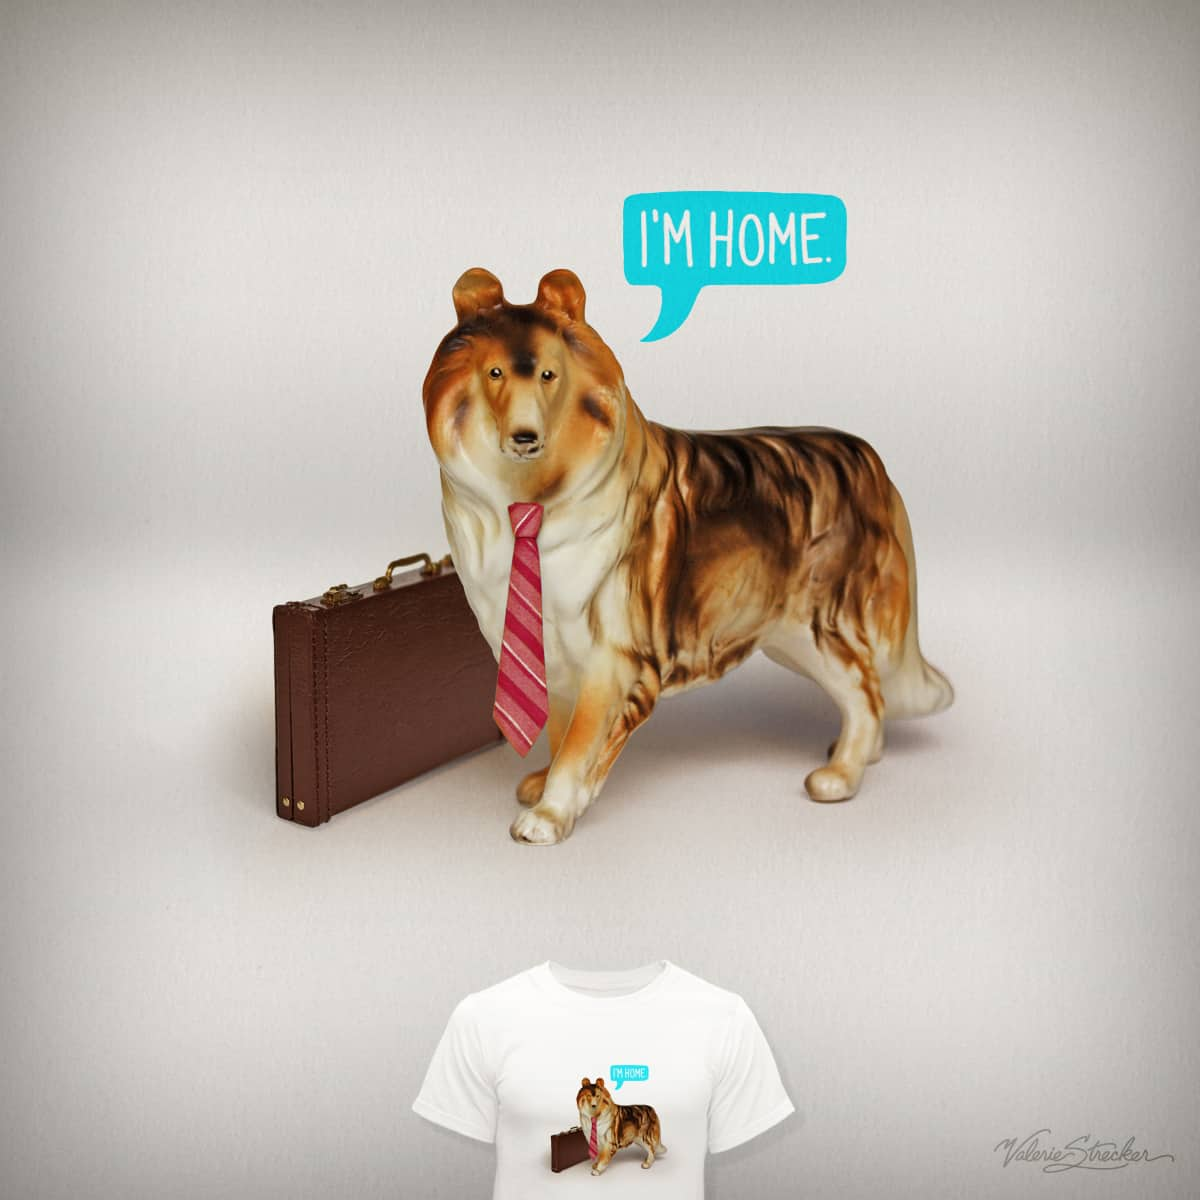 I'm home. by ValerieStrecker on Threadless